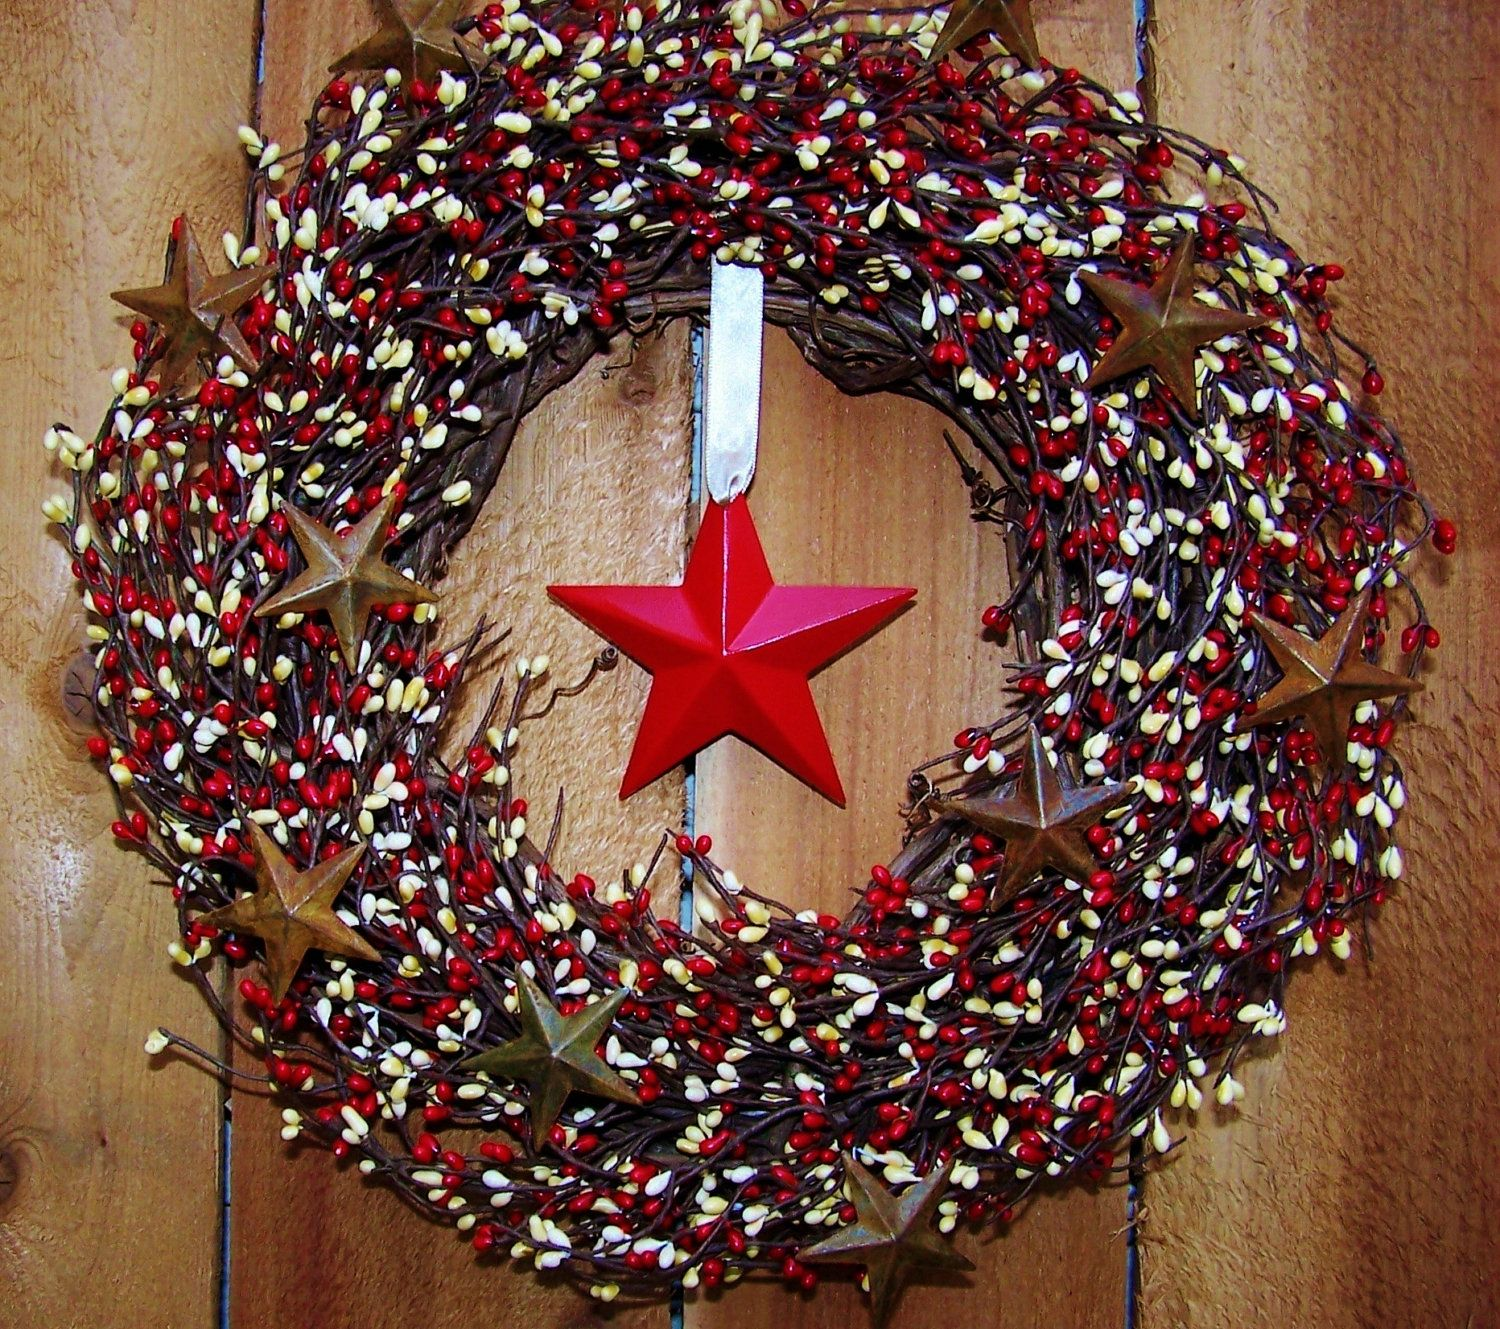 Country Americana Christmas Decor Country Christmas Decorations Holiday Crafts Diy Christmas Wreaths